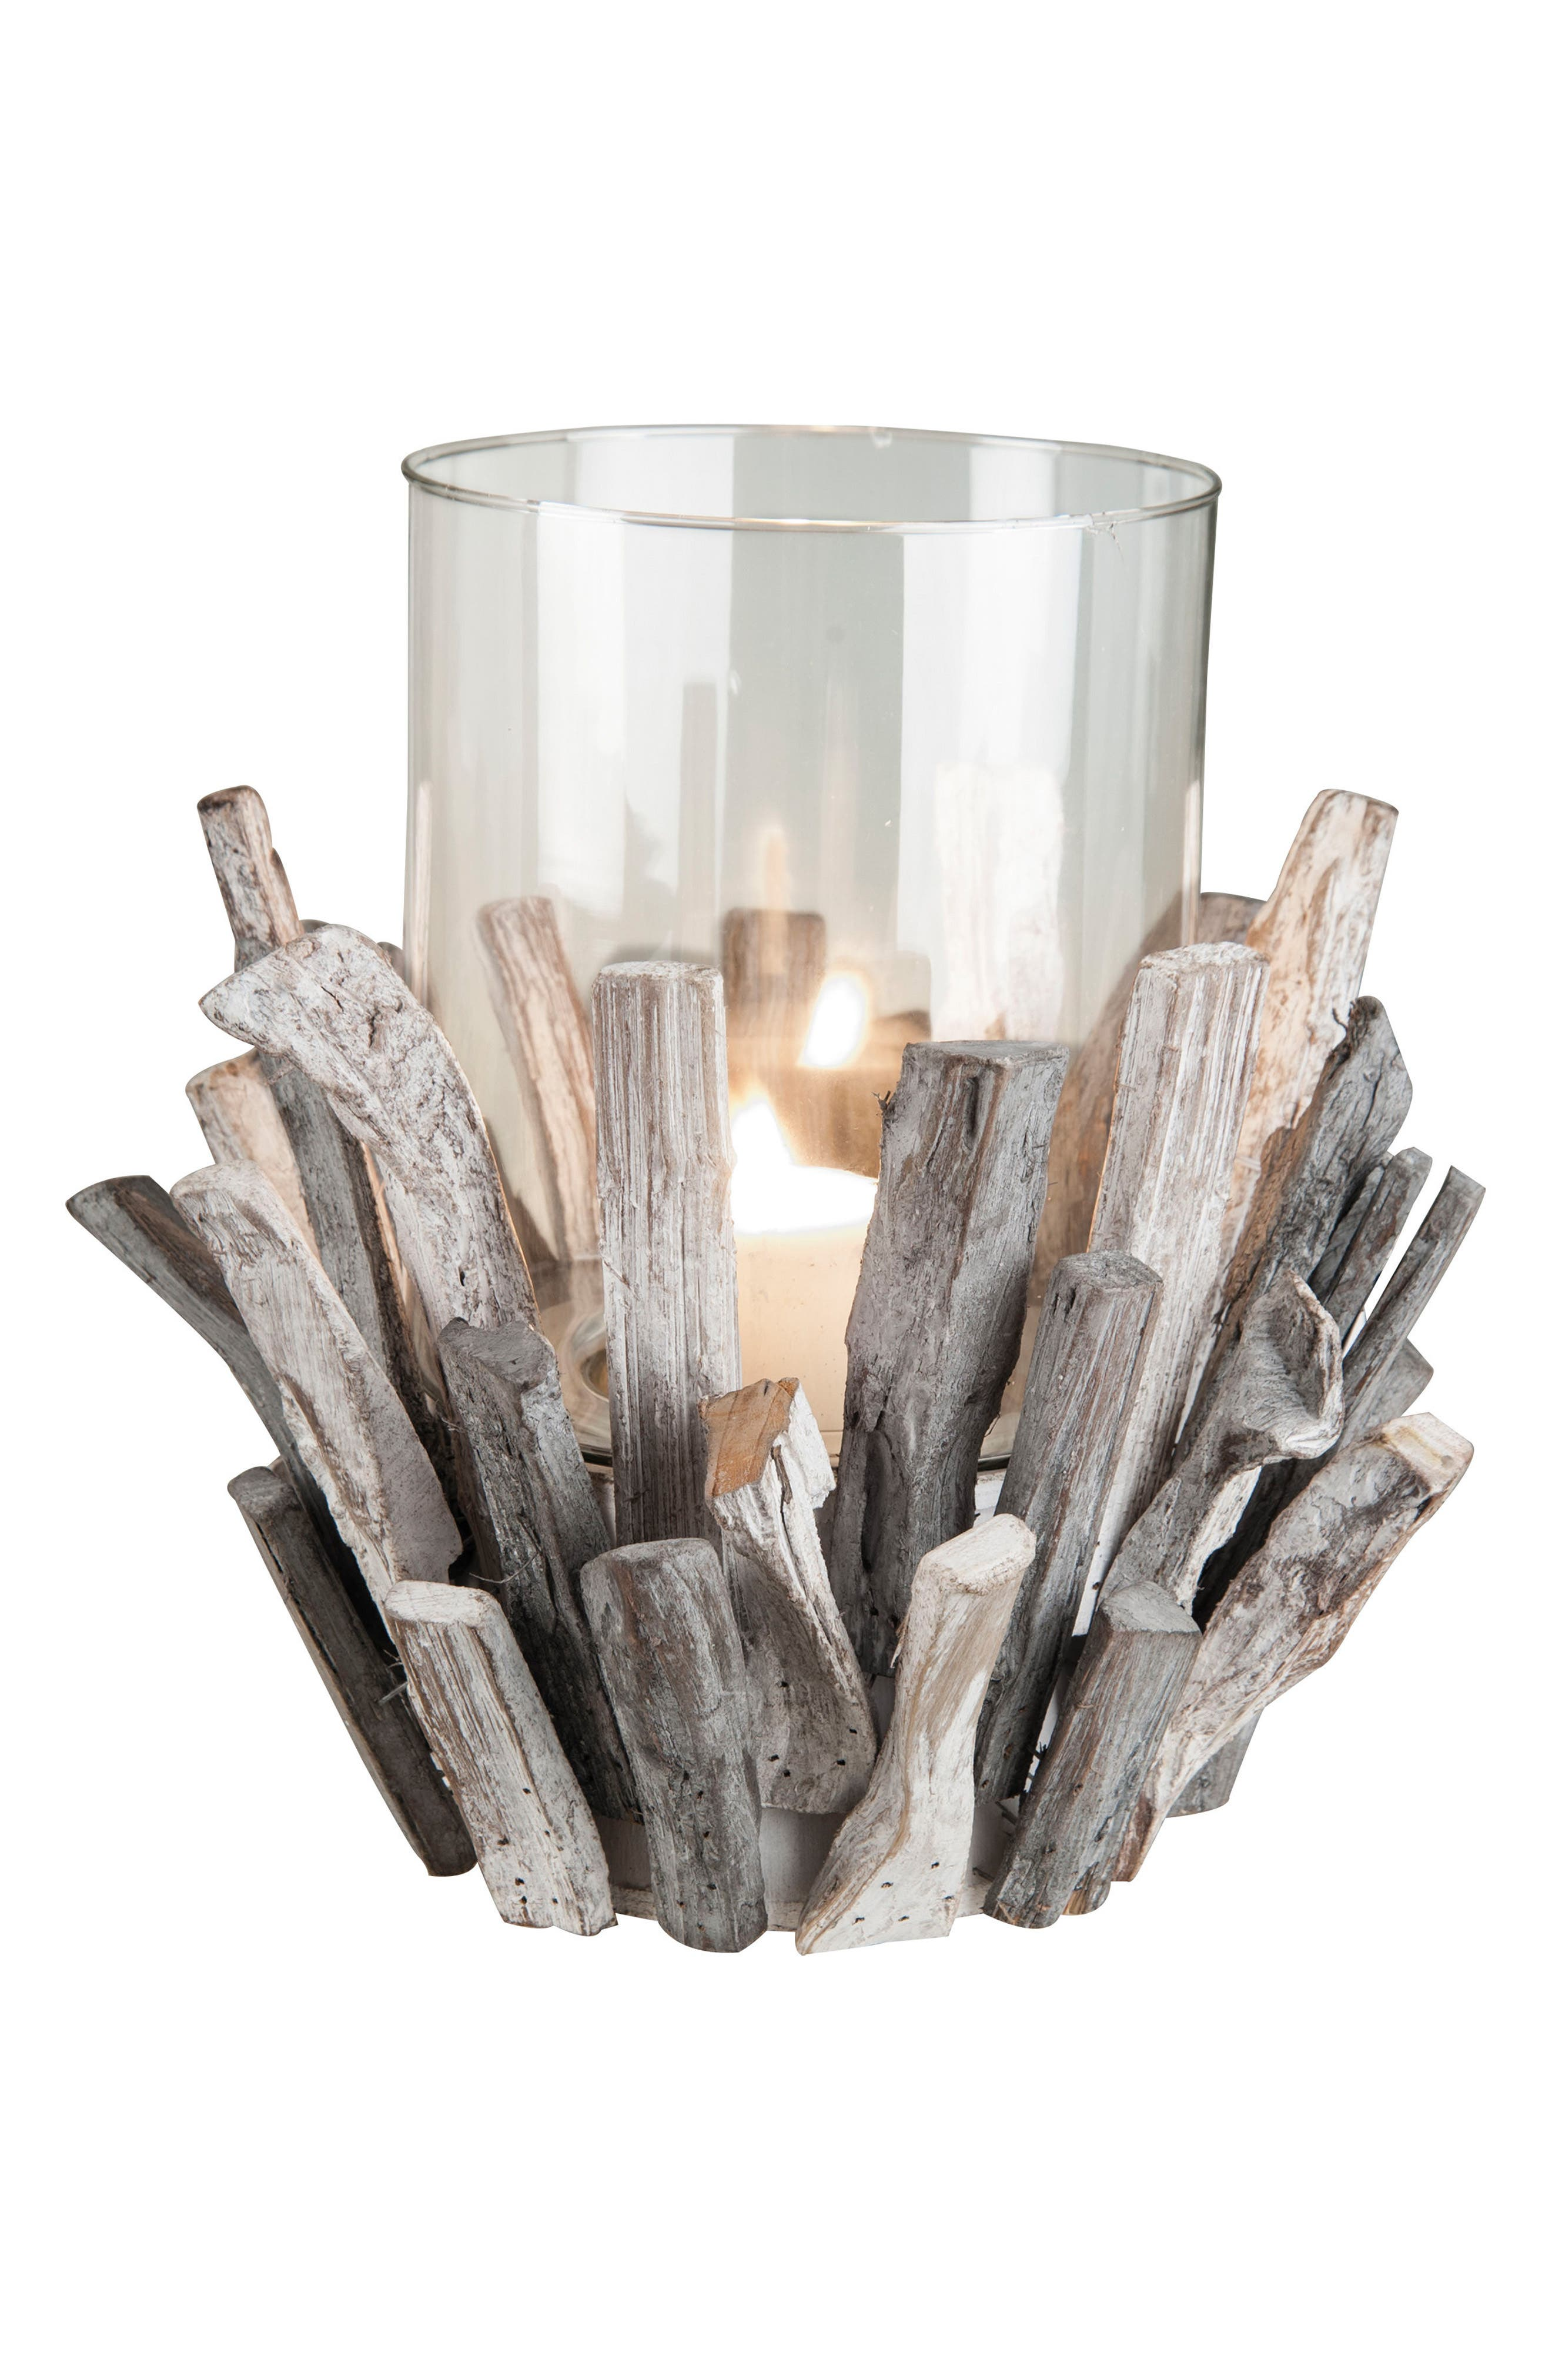 Foreside Wood & Glass Candle Holder